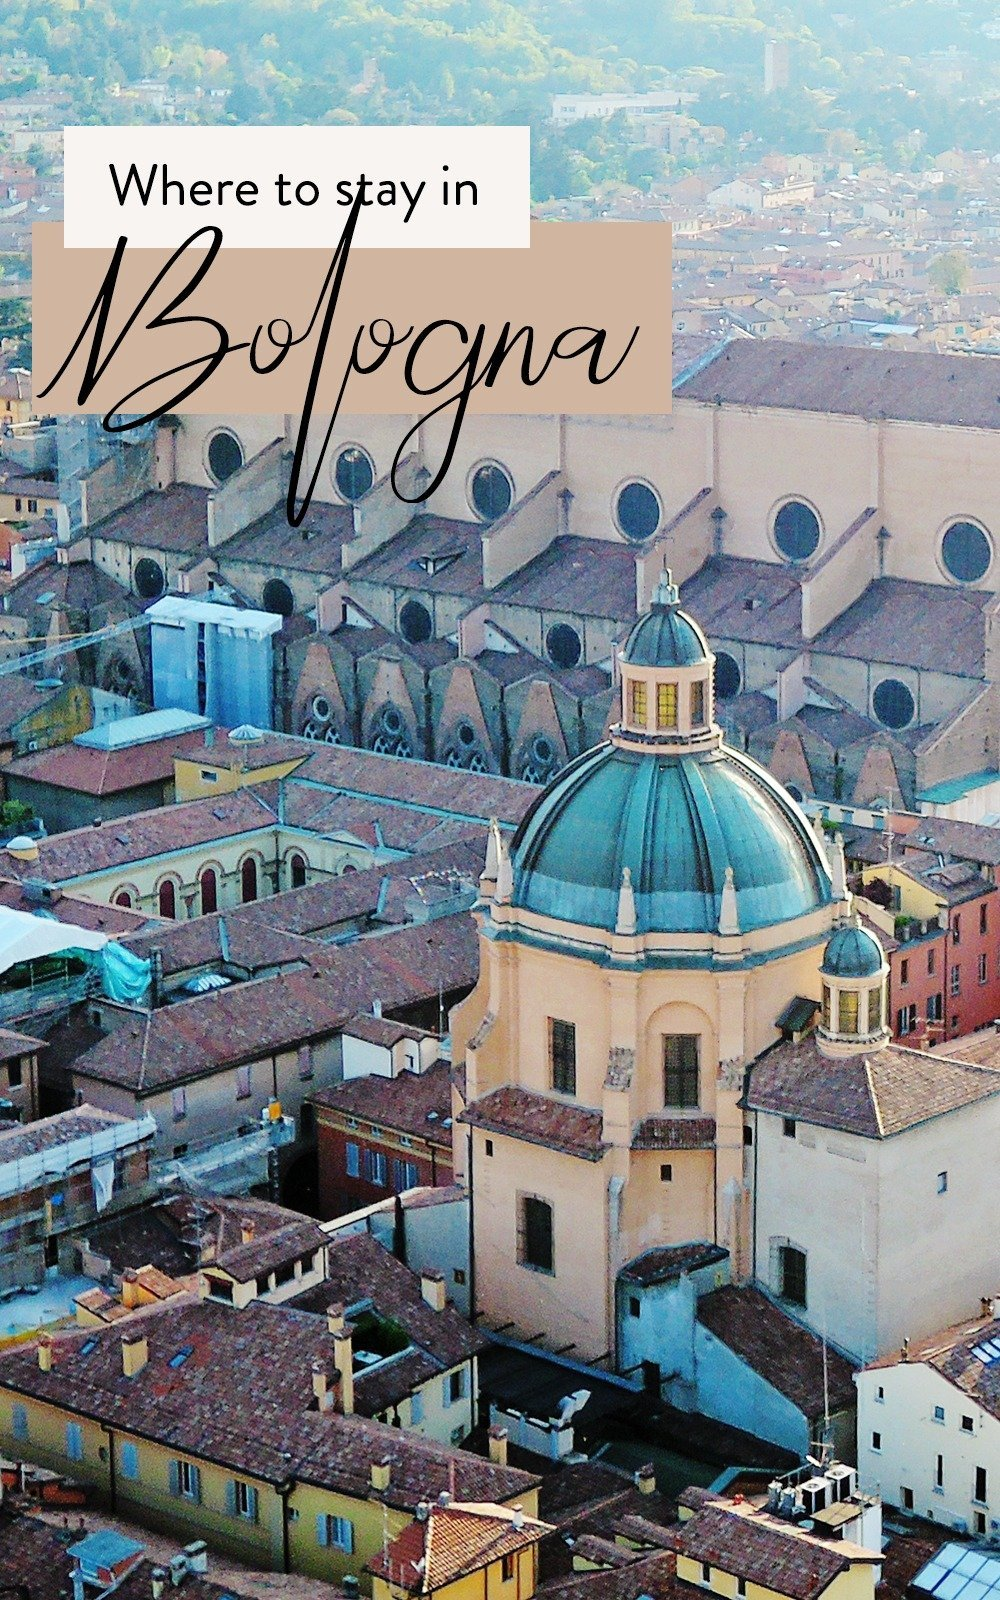 If you love food, road trips, and relaxing city breaks, Bologna is the perfect destination for you. This is the heart of Emilia-Romagna, Italy's gastronomic capital. Fill your tummies with tortellini, mortadella, and gelato as you have the ultimate foodie holiday. Here's where to stay in Bologna, Italy.